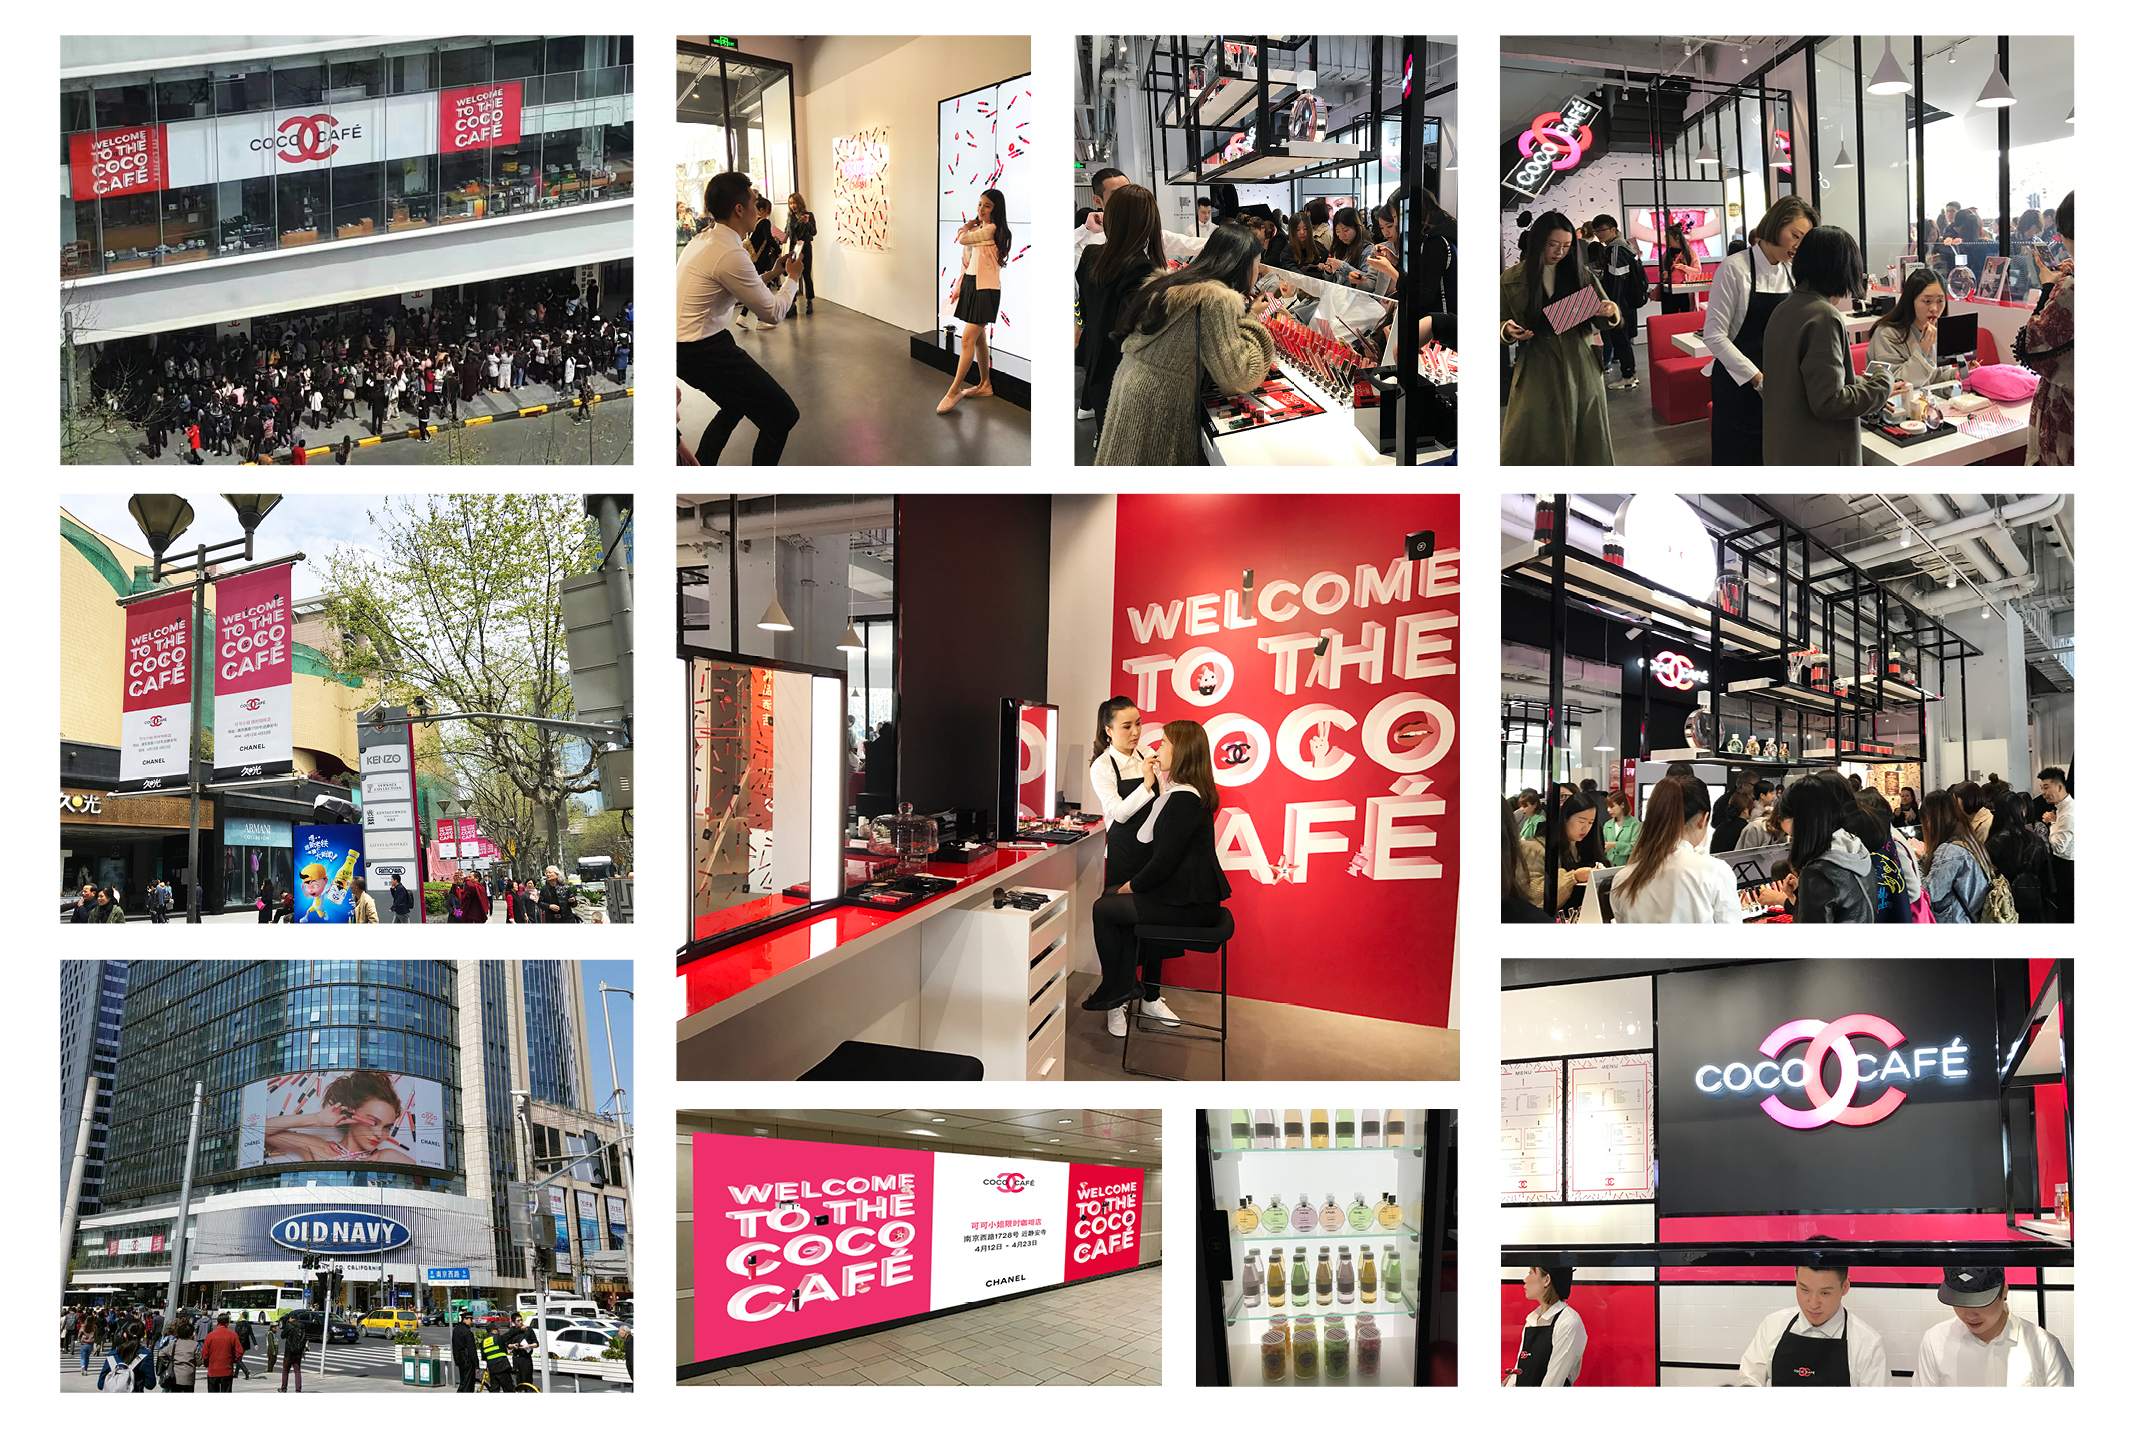 Inside and outside of Coco Cafe. The event was supported by large digital billboards on buildings and subways; banners all around JingAn Temple area of Shanghai.